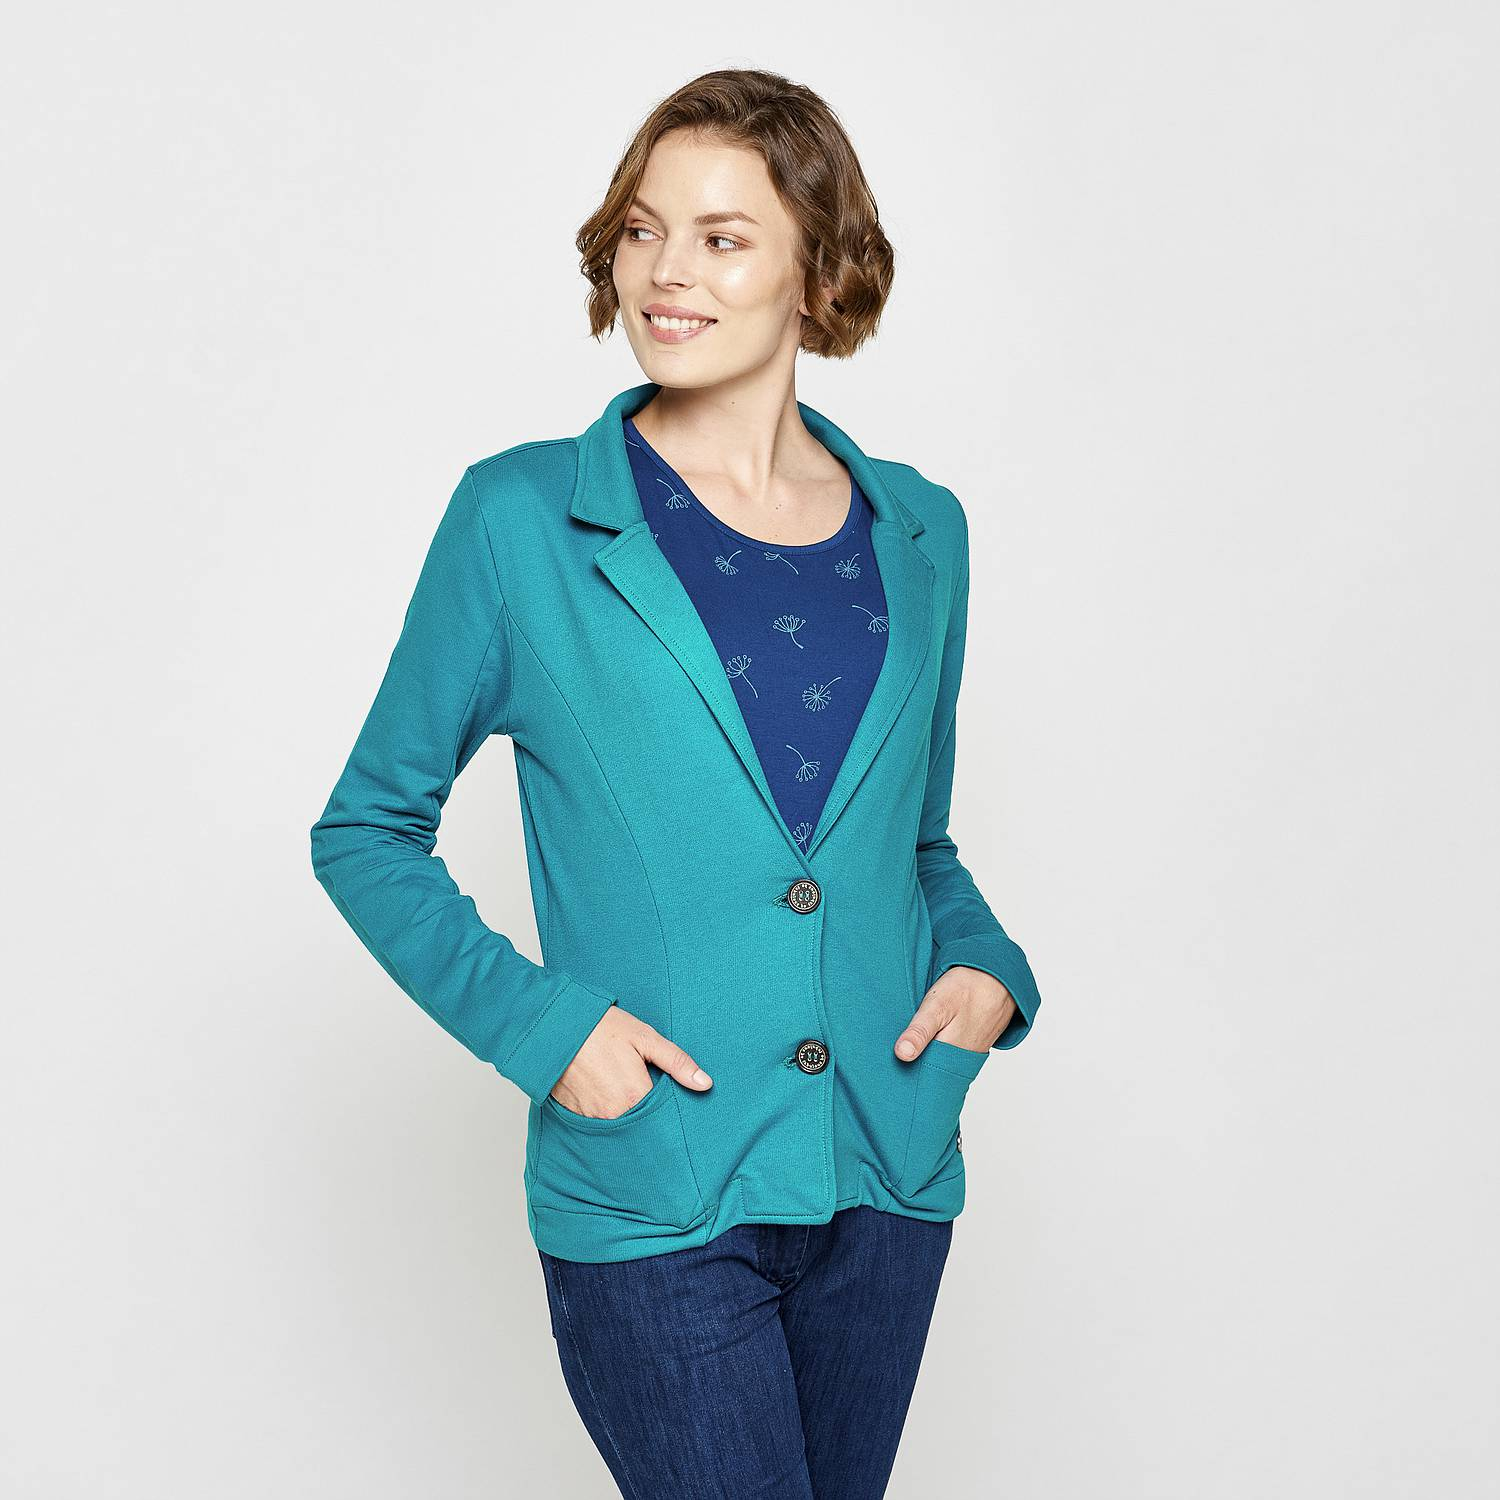 Blazer Nika aquatic